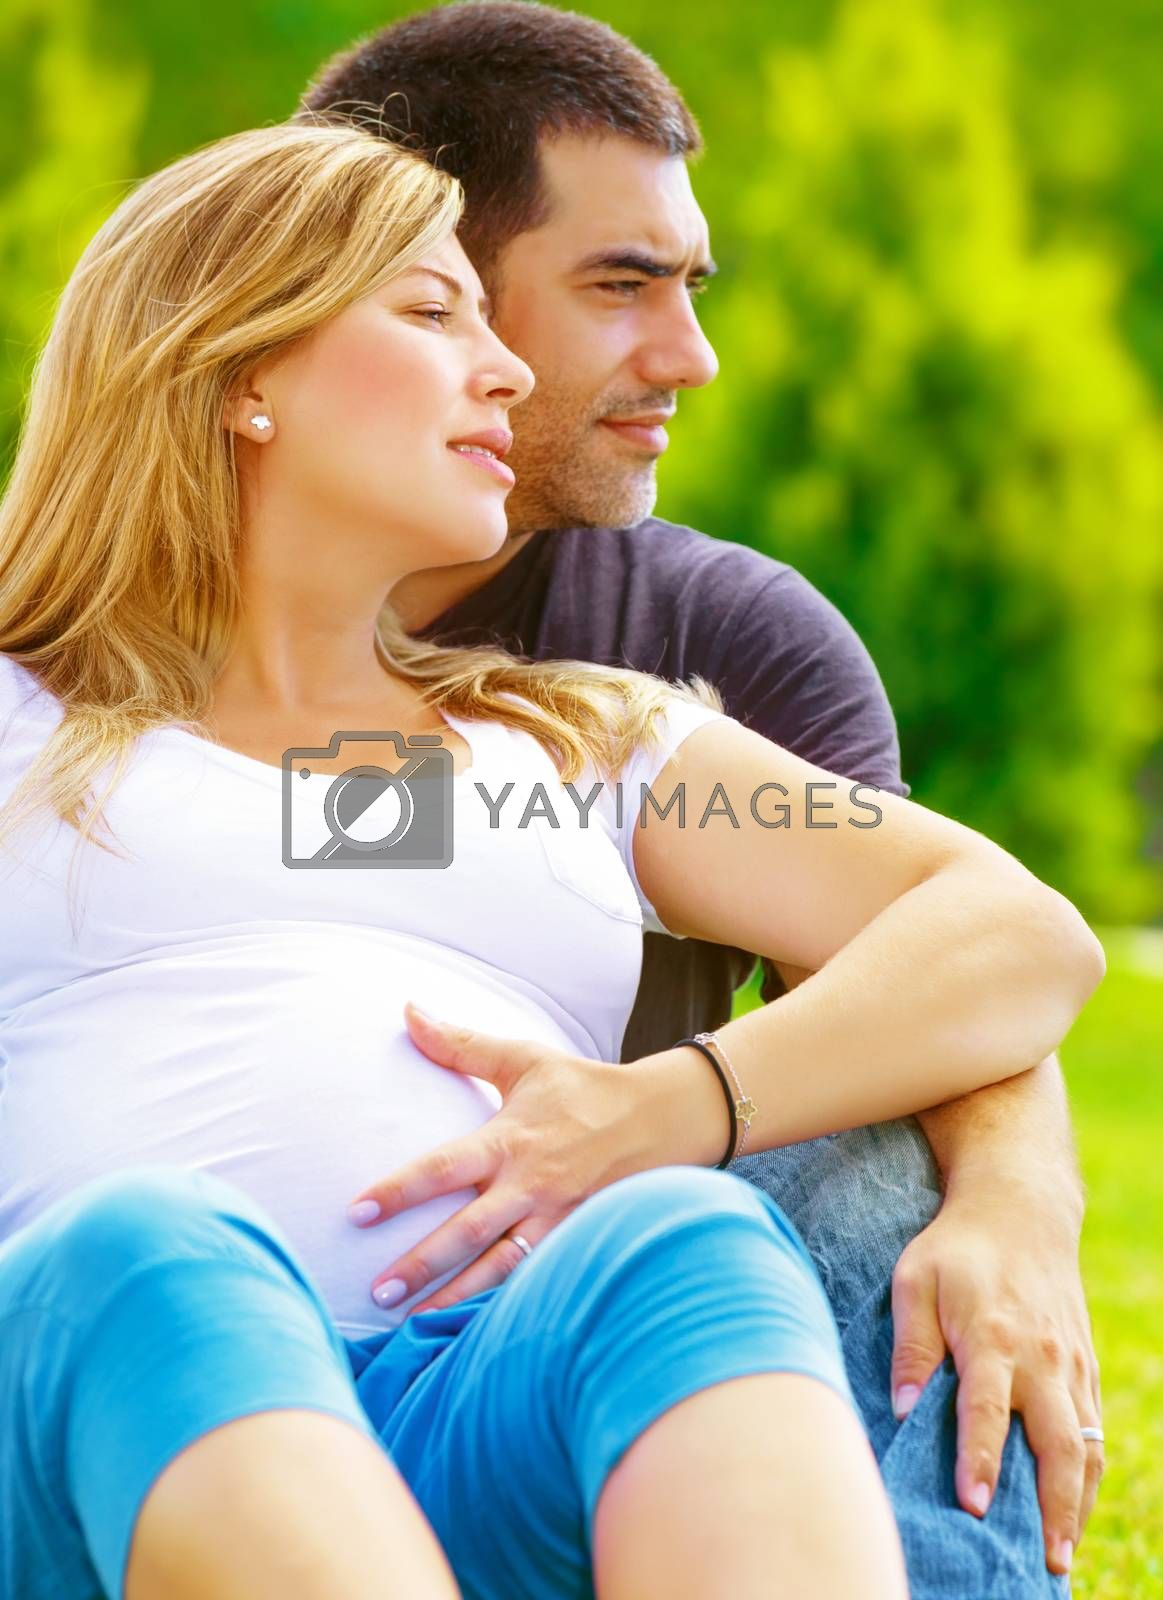 Royalty free image of Happy family awaiting baby by Anna_Omelchenko